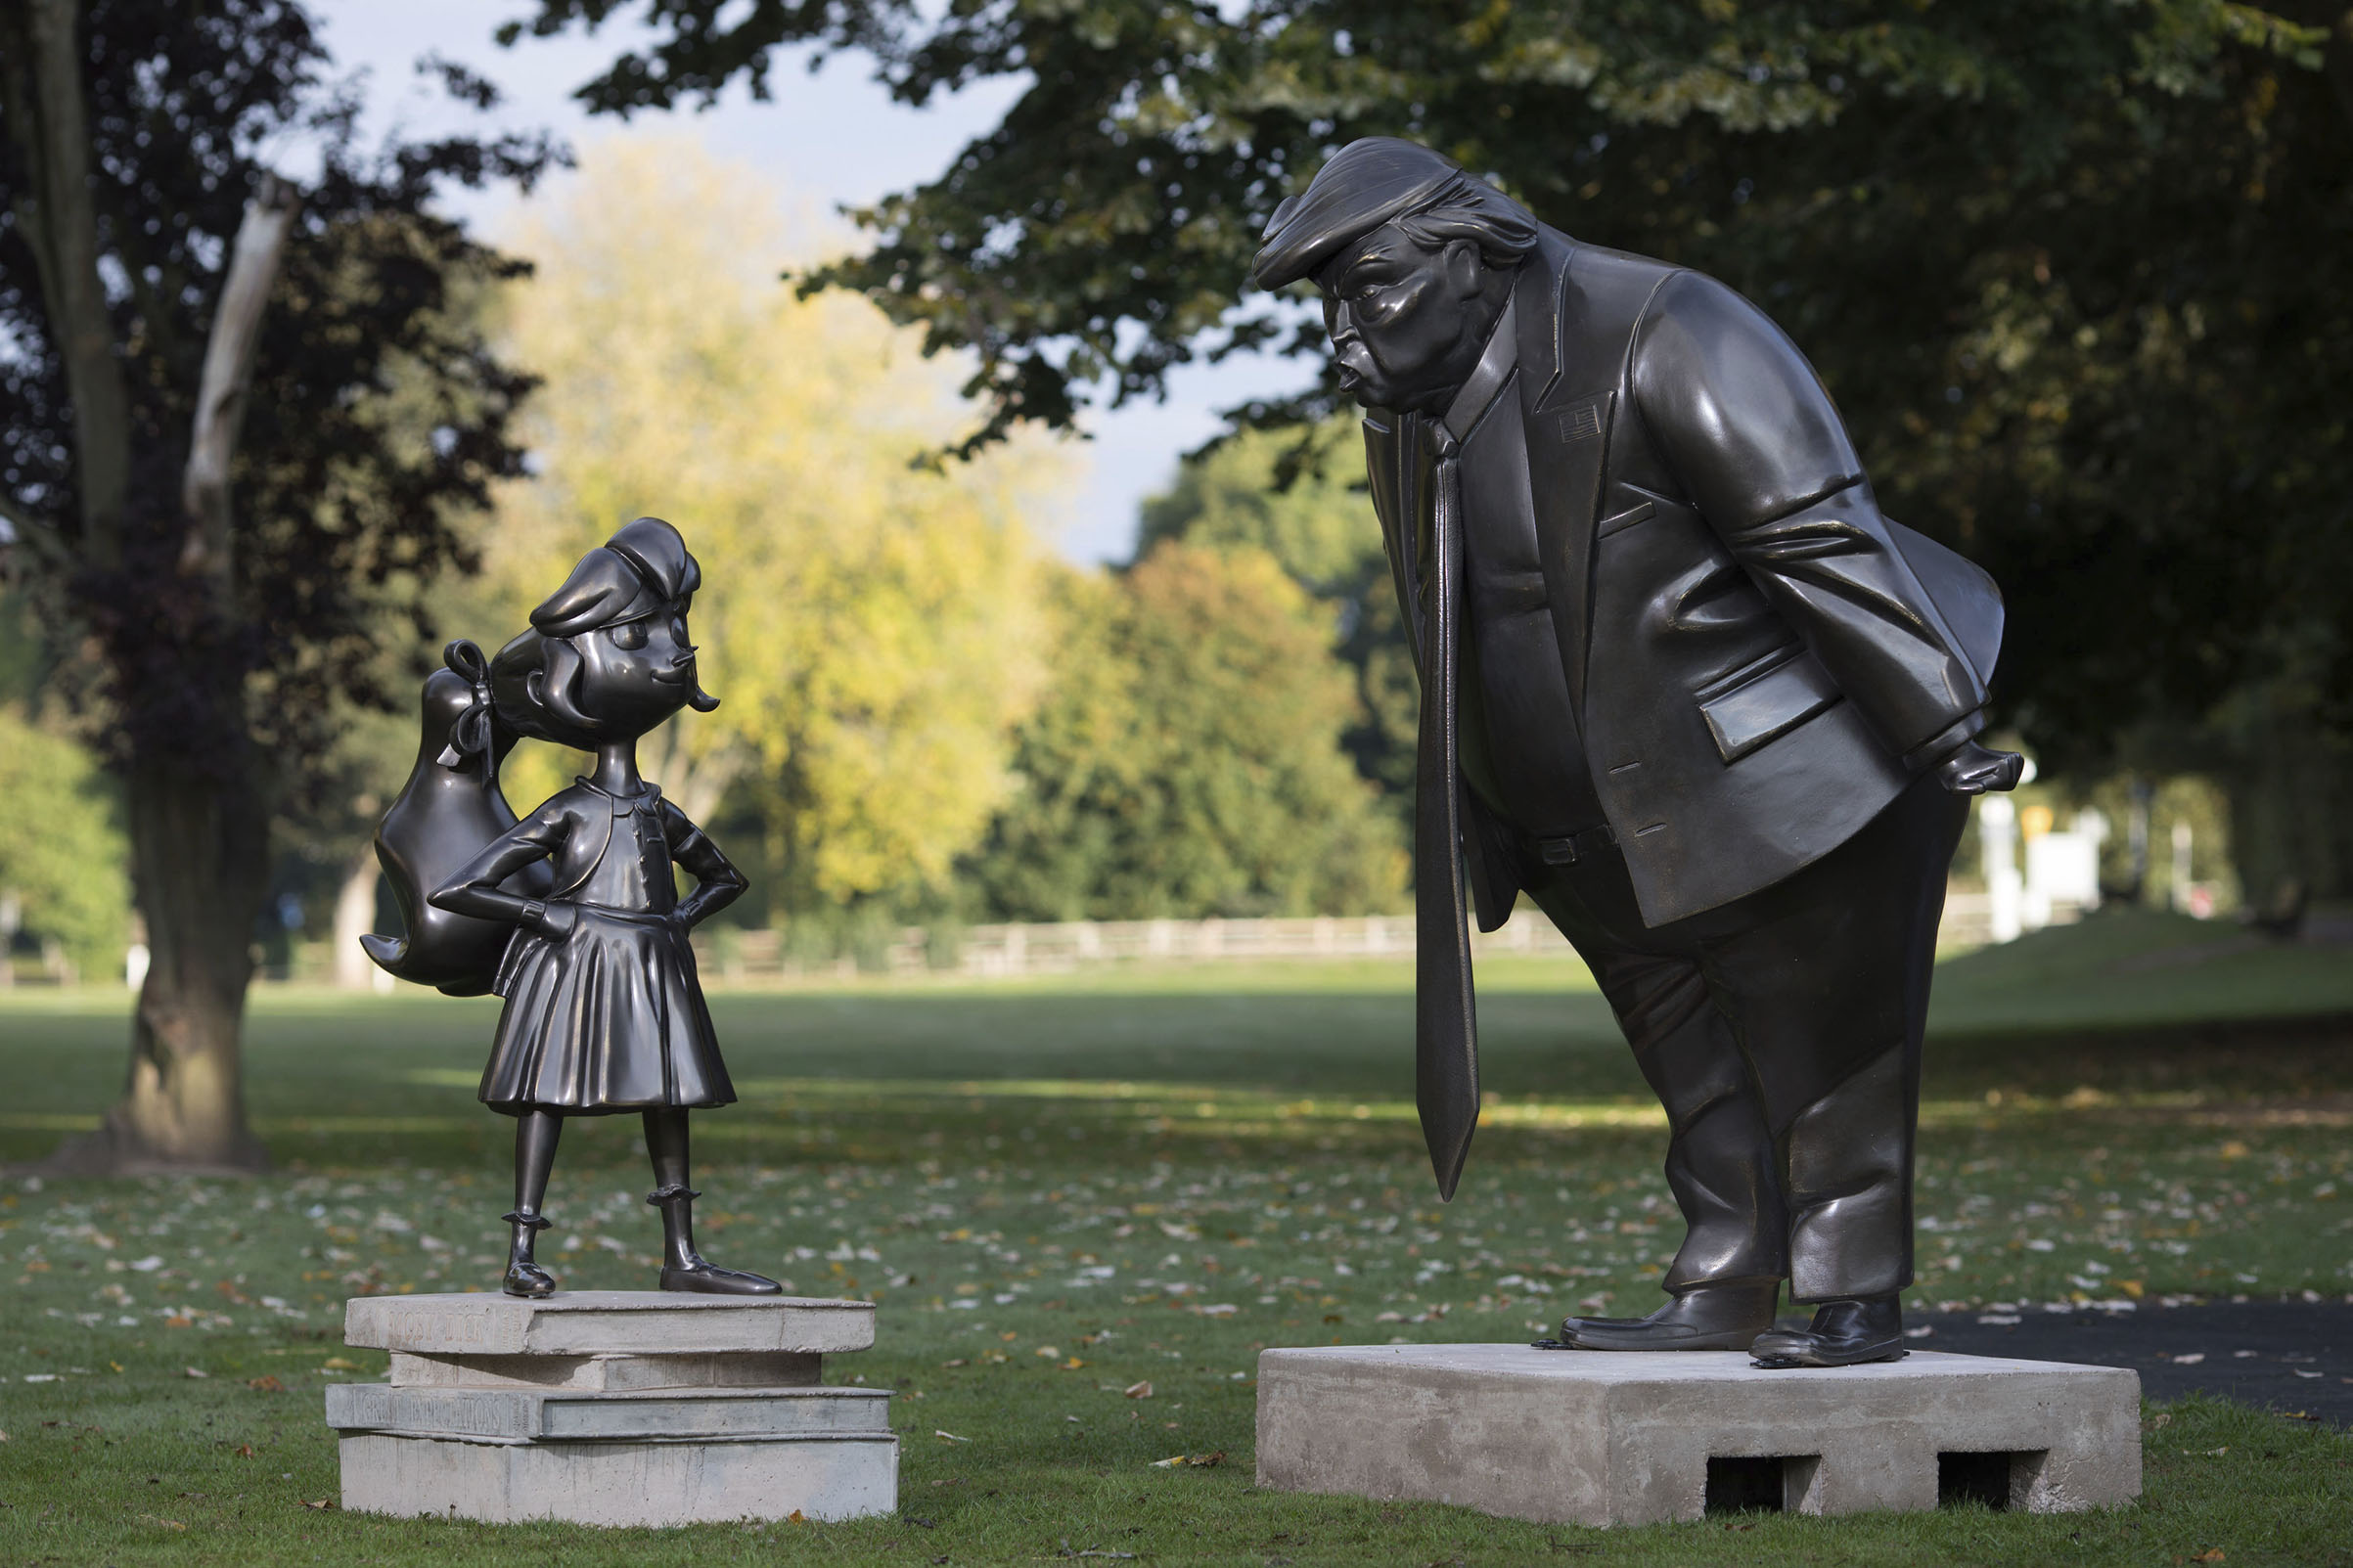 A statue of Roald Dahl's Matilda is unveiled in Great Missenden in Buckinghamshire, alongside one of President Donald Trump, to celebrate the 30th Anniversary of Matilda the novel.